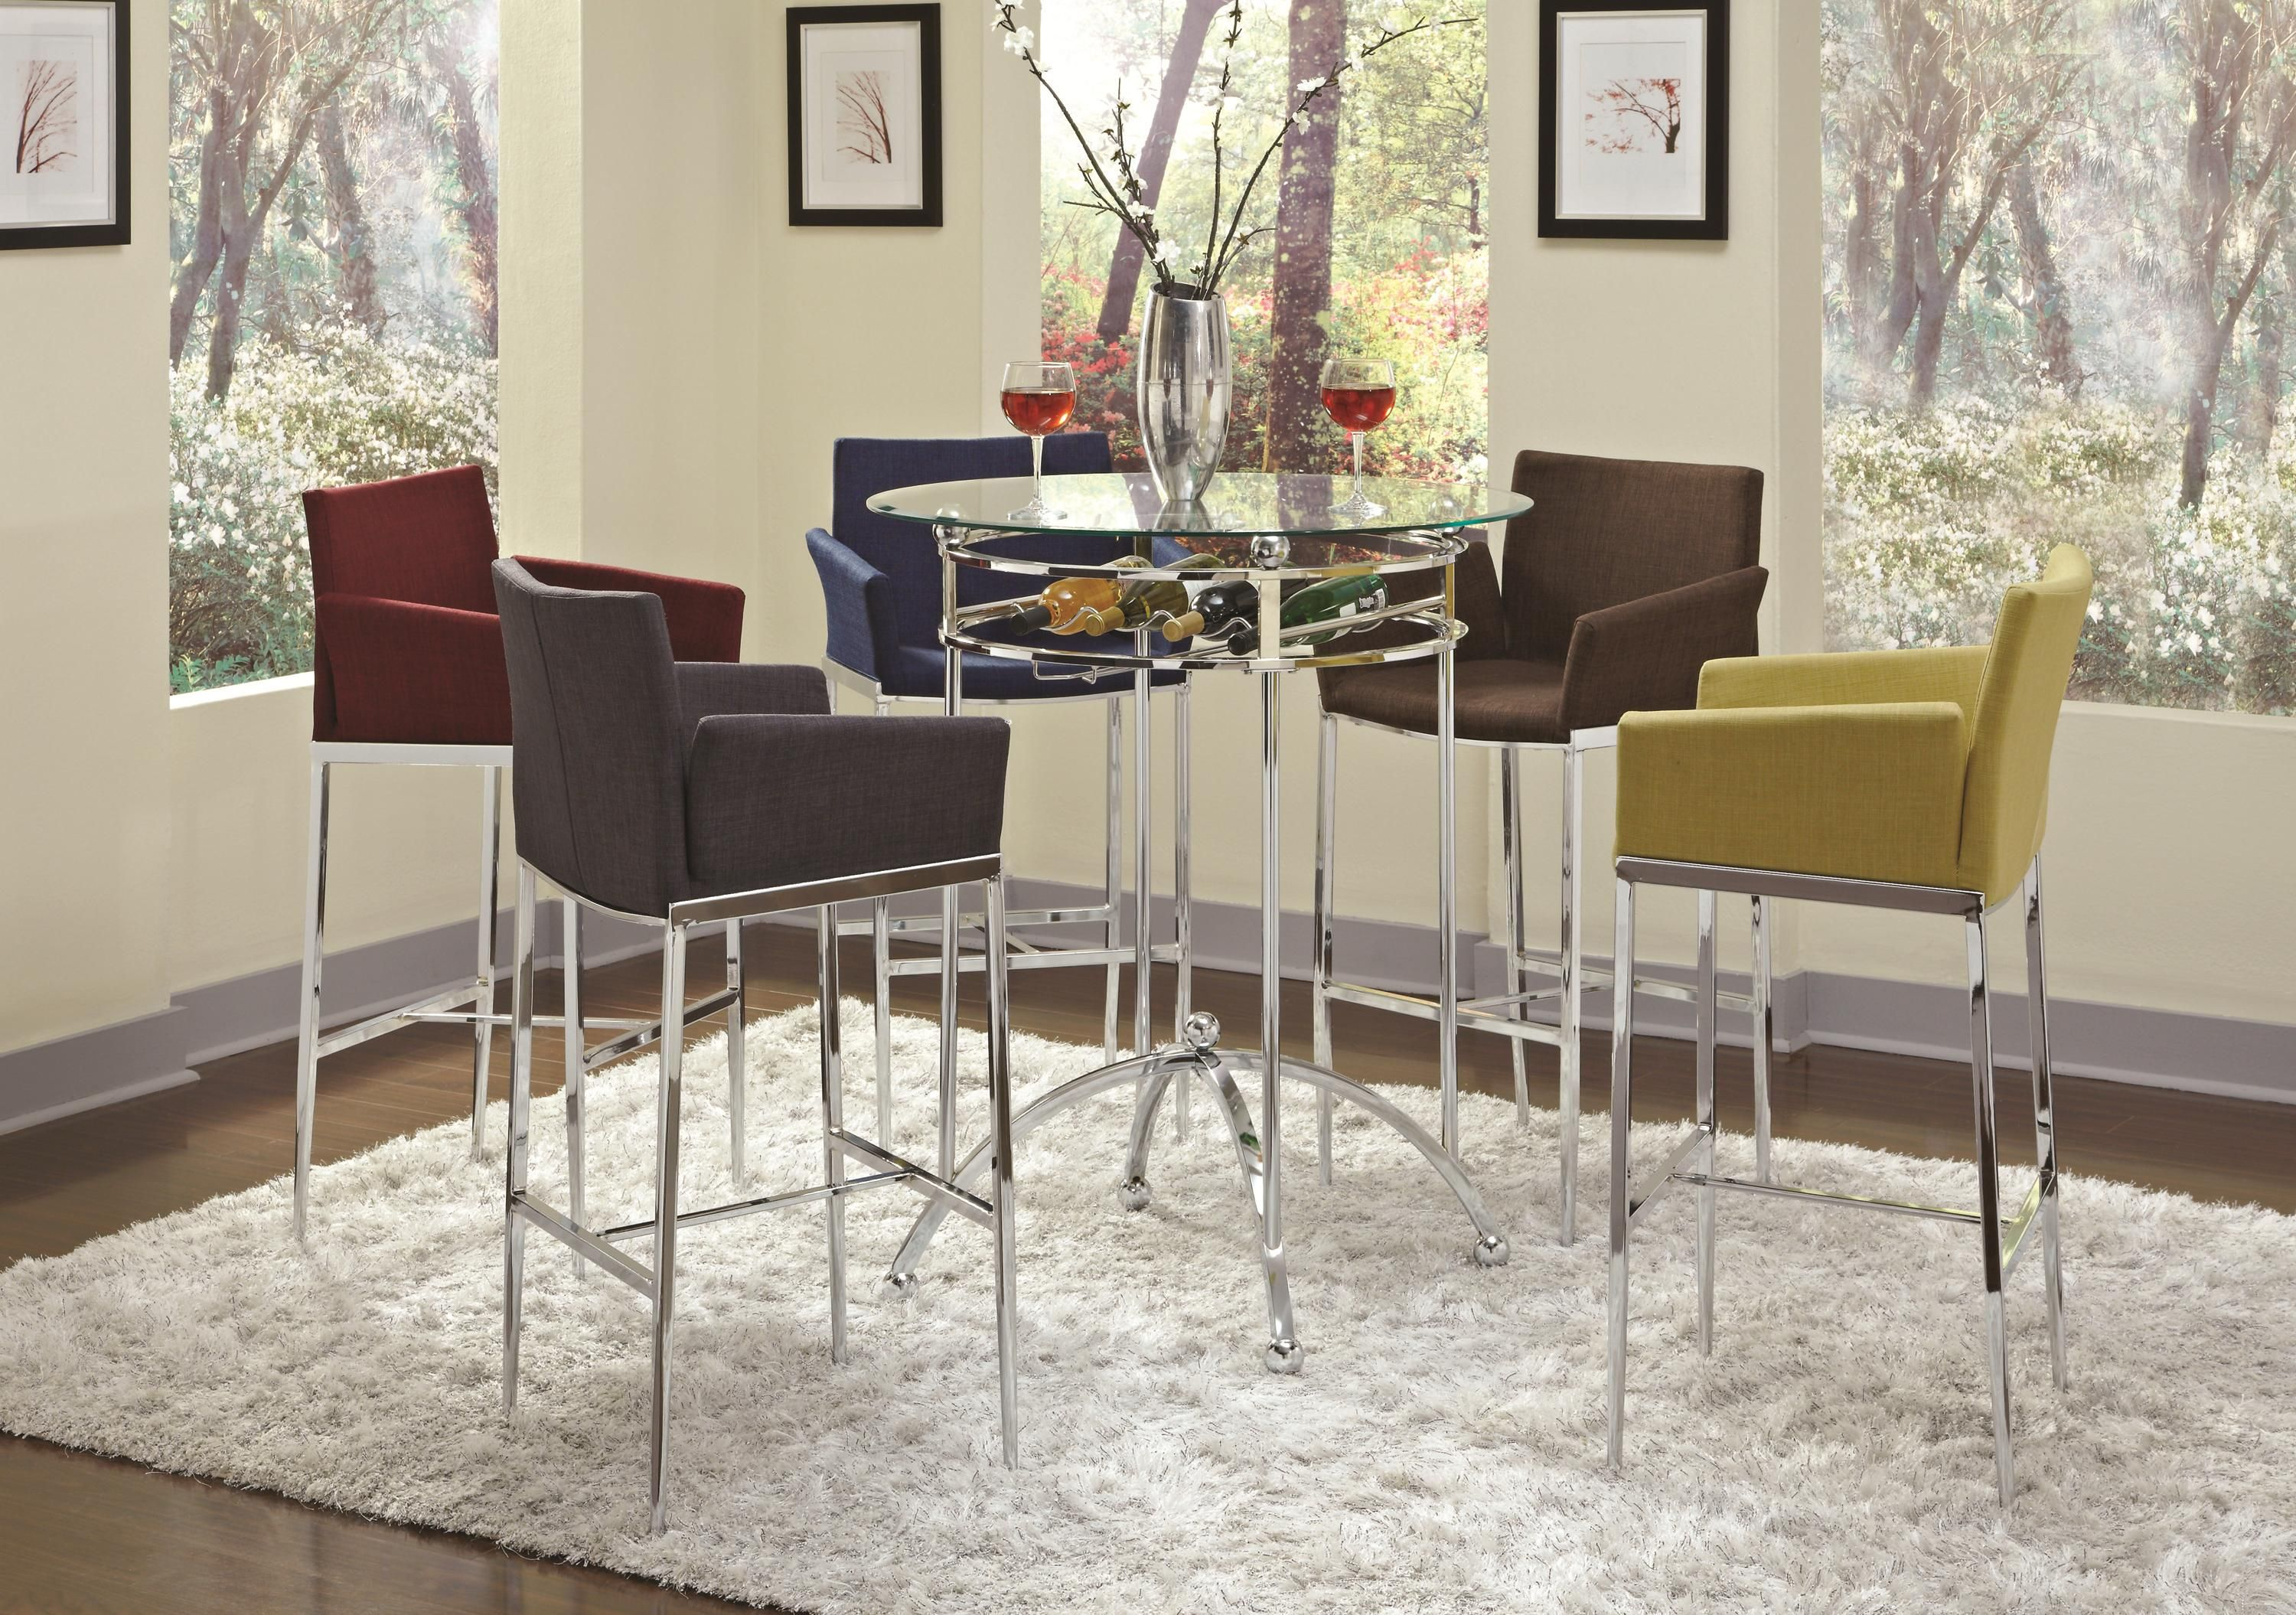 Chrome And Glass Pub Table By Coaster $260. Chrome And Cranberry Barstool  $180 3 Piece Set $620 On Sale Now For $539 Barstools Available In Other  Colors!